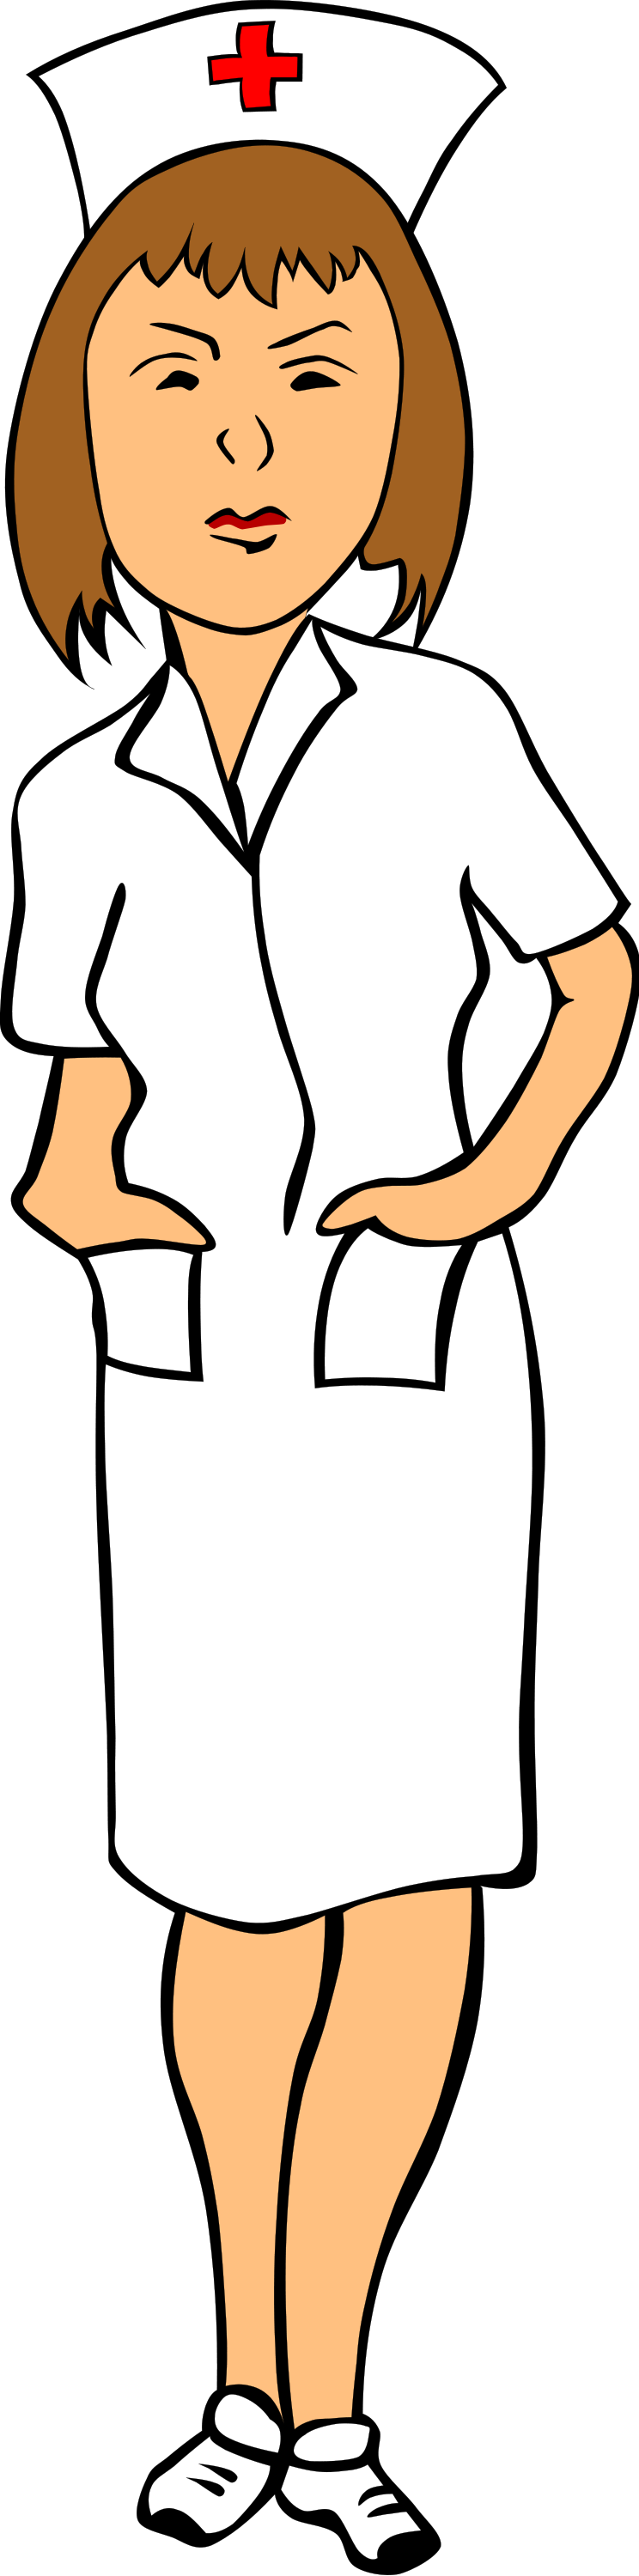 Nurse free stock photo. Patient clipart woman patient